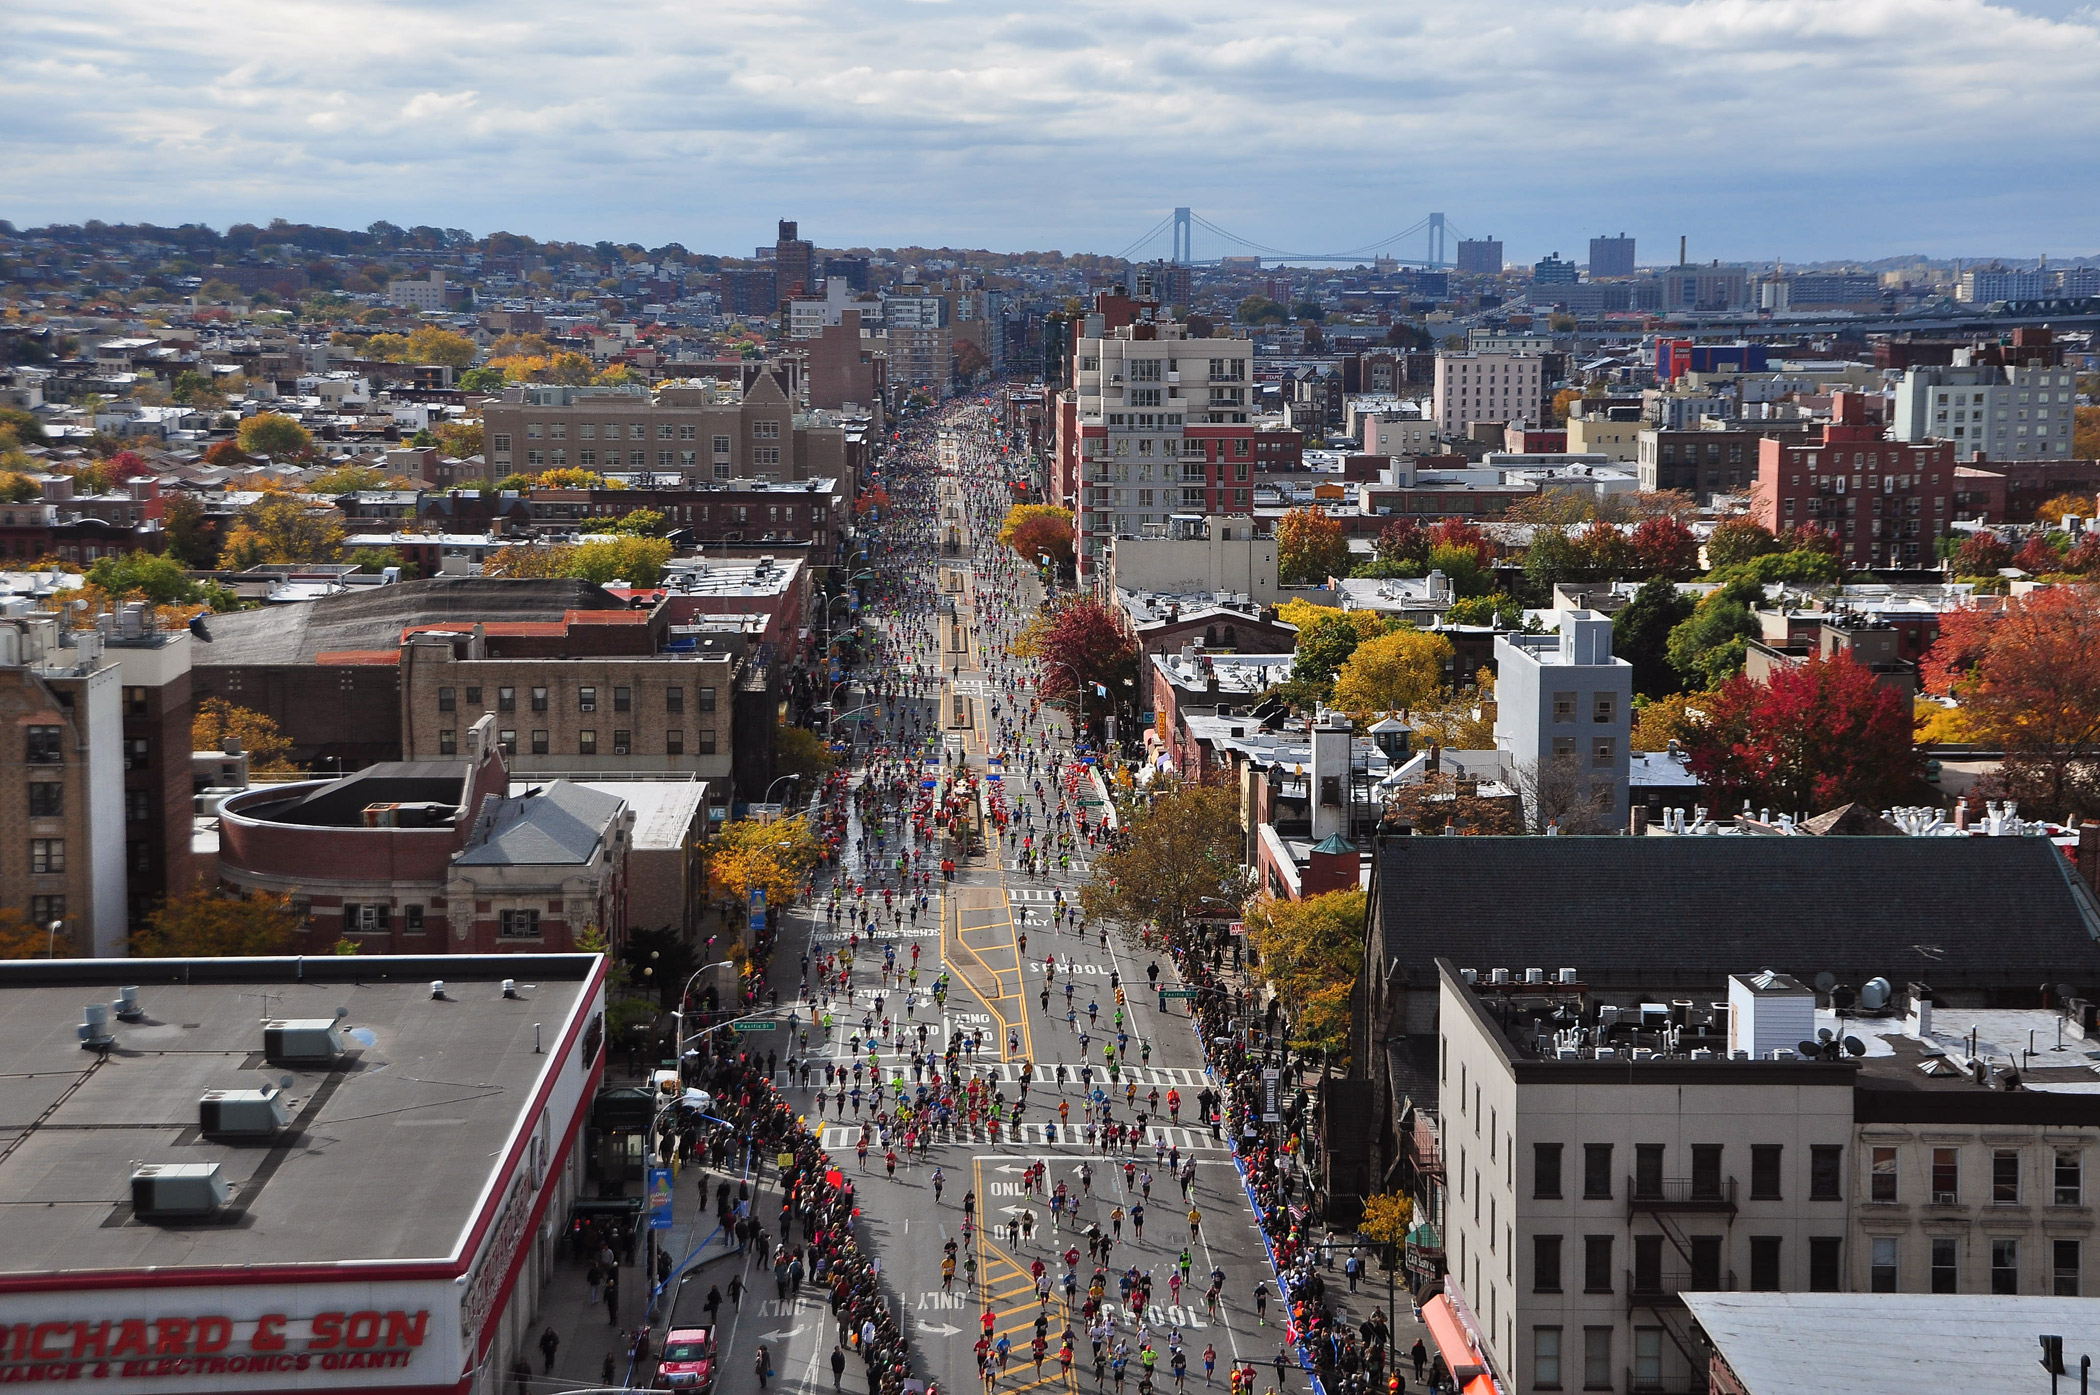 A view of competitors in the 2013 New York City Marathon from 4th Avenue in New York's Brooklyn borough.